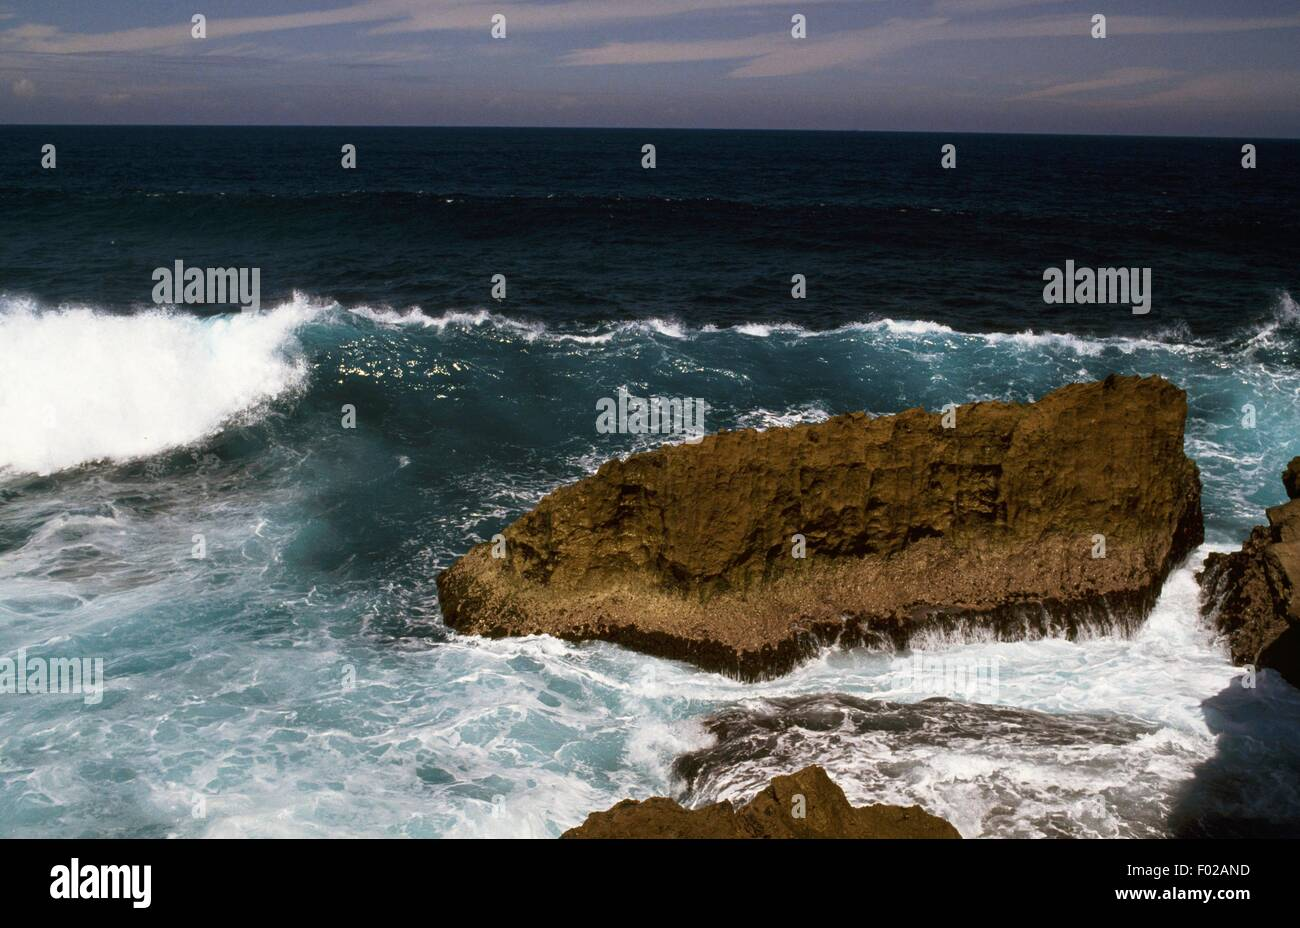 Waves breaking on the rocky coast, Puerto Rico. - Stock Image